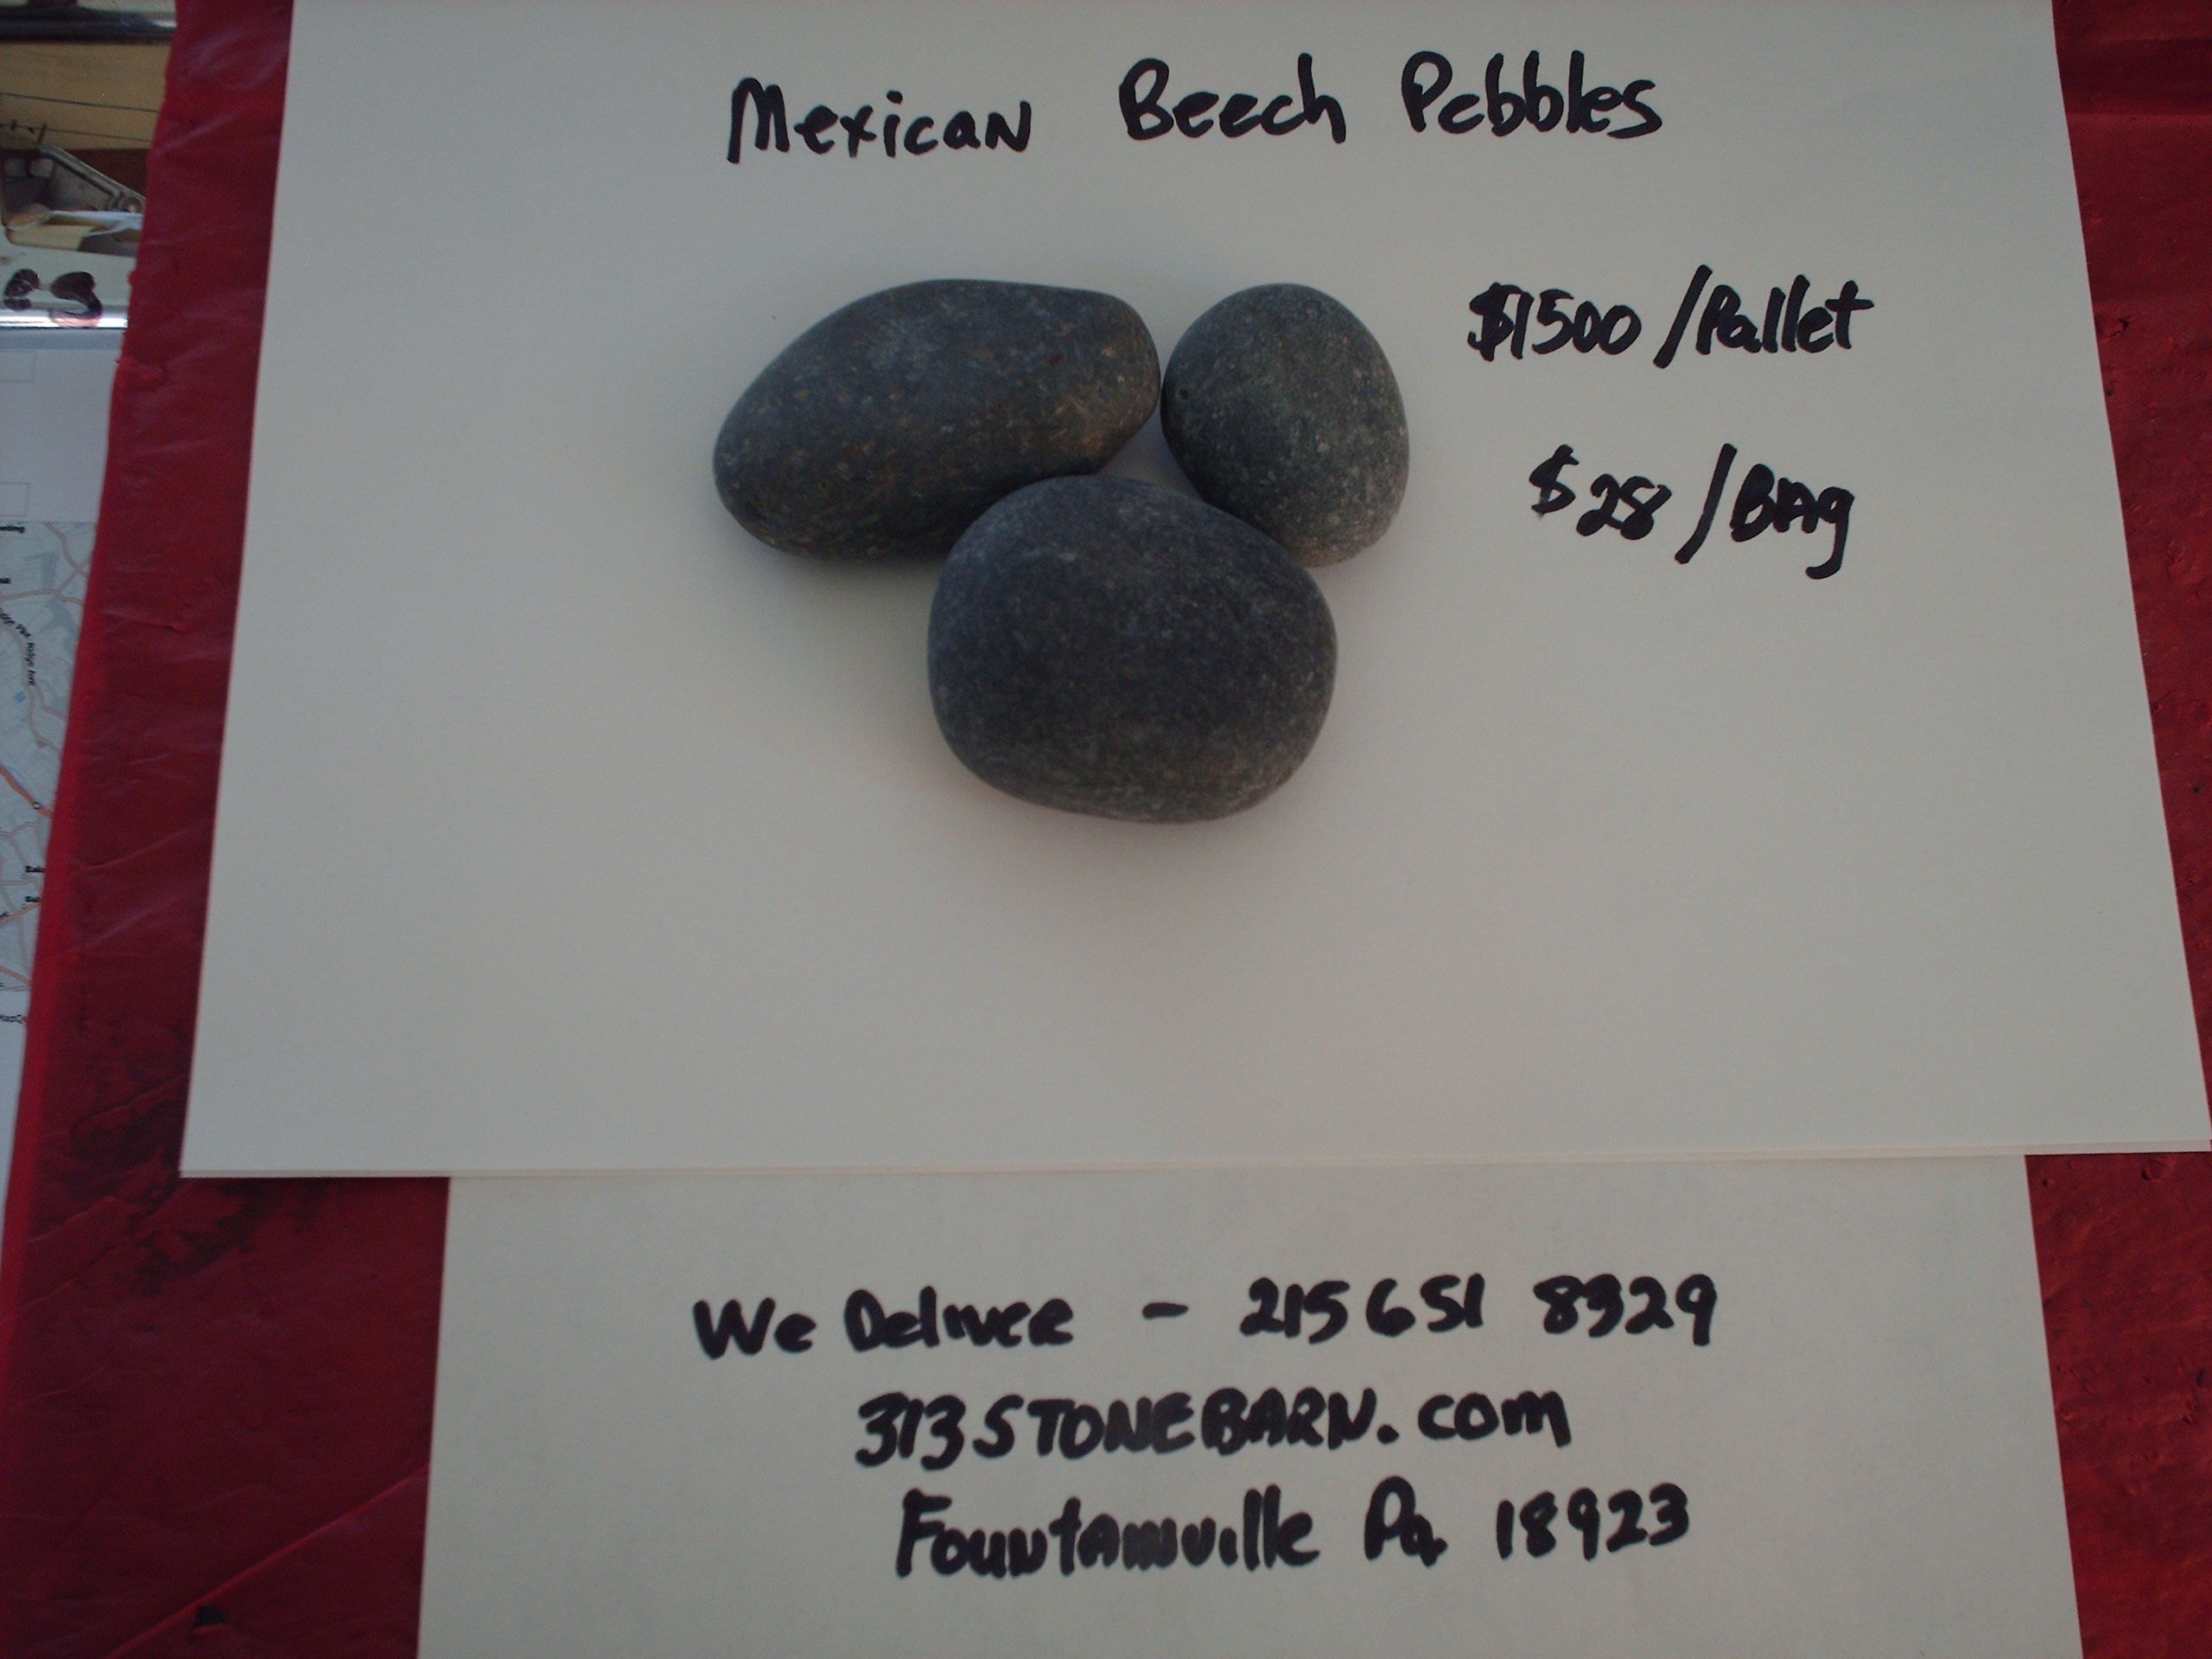 We deliver pallets of these Mexican Beech Pebbles.